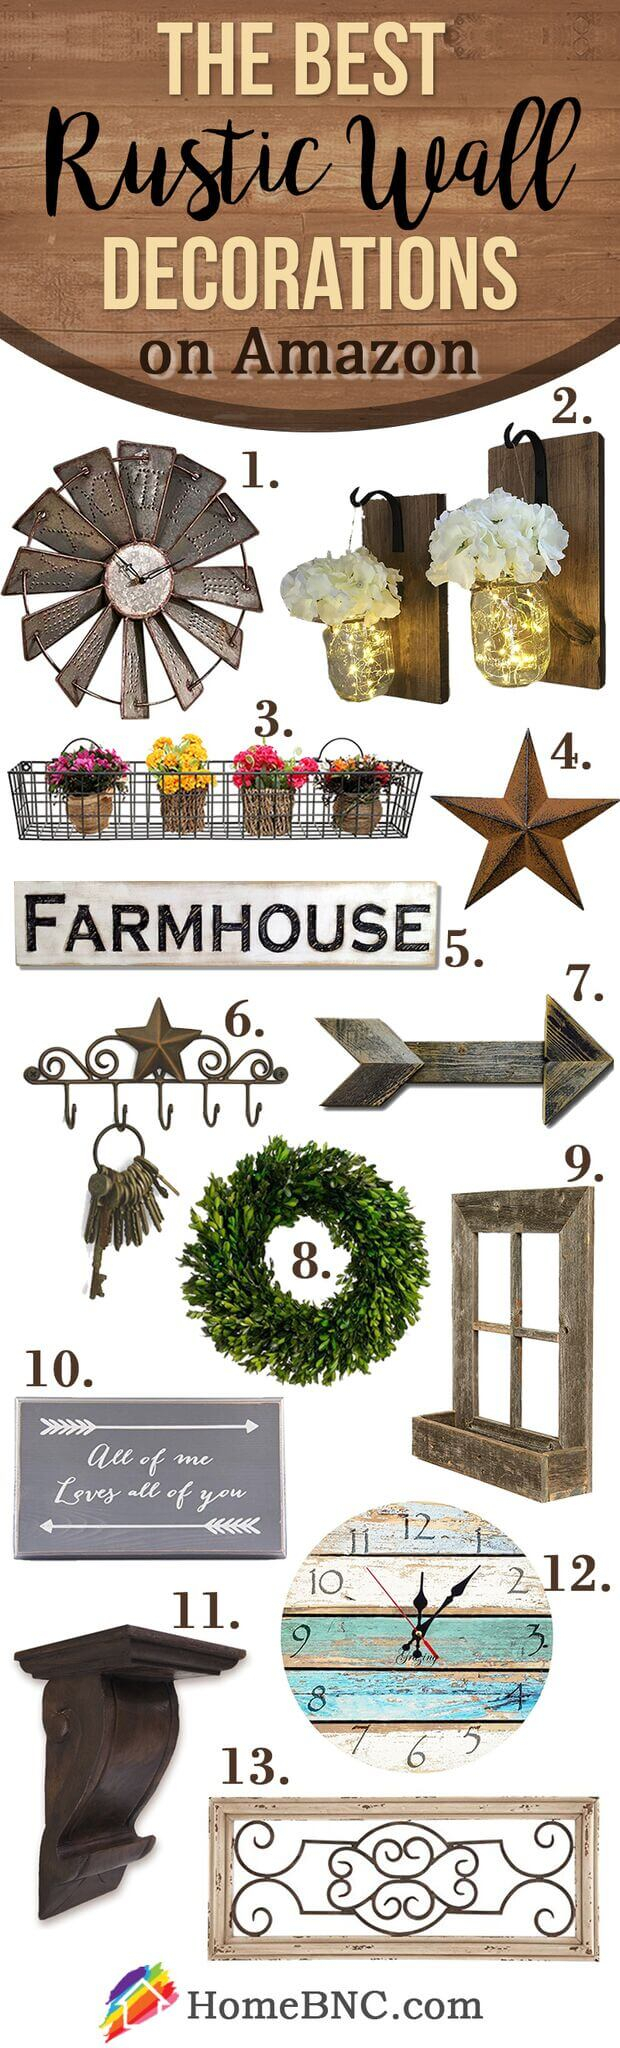 36 Best Diy Wall Art Ideas (designs And Decorations) For 2019 With Floral Wreath Wood Framed Wall Decor (View 24 of 30)